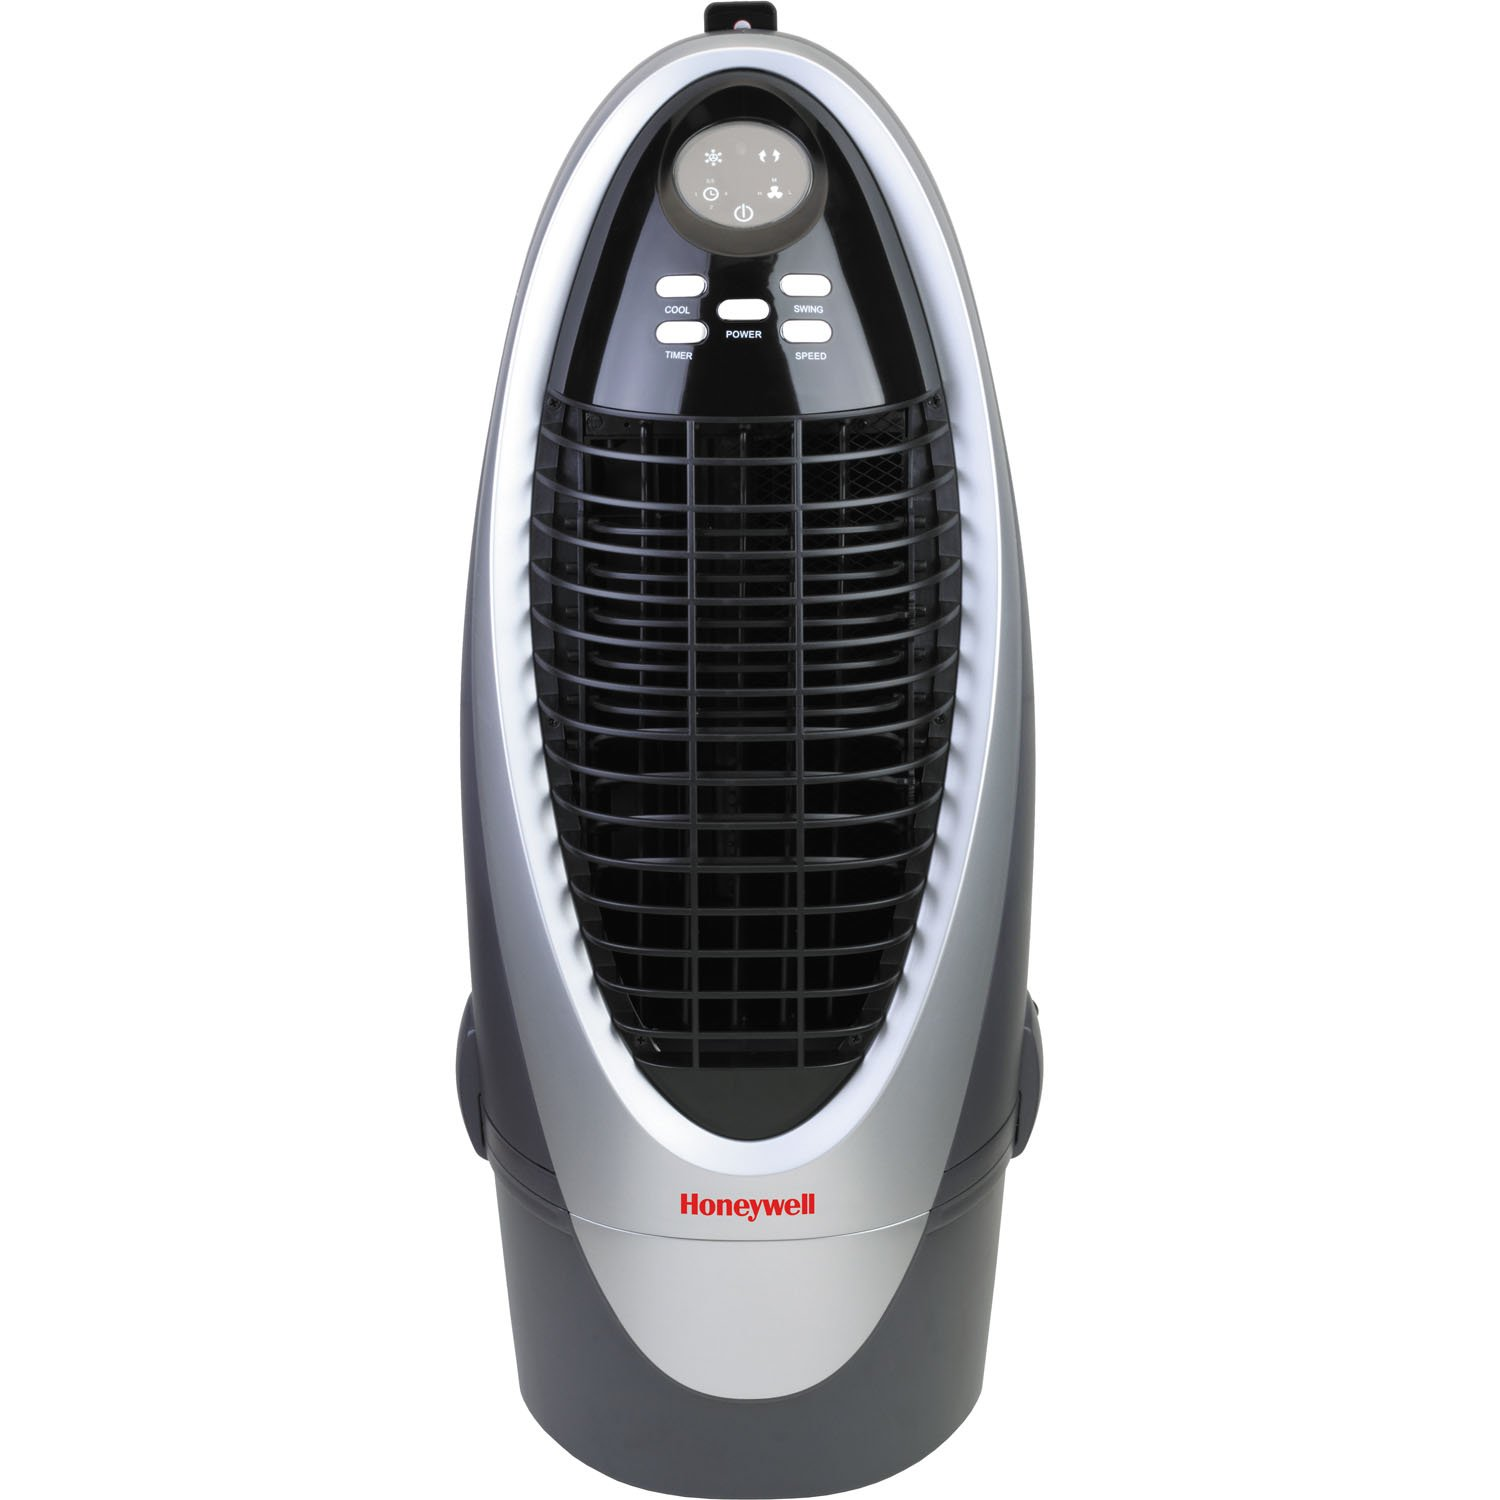 Honeywell CS10XE 300 CFM Indoor Evaporative Air Cooler (Swamp Cooler) with Remote Control in Silver/Gray